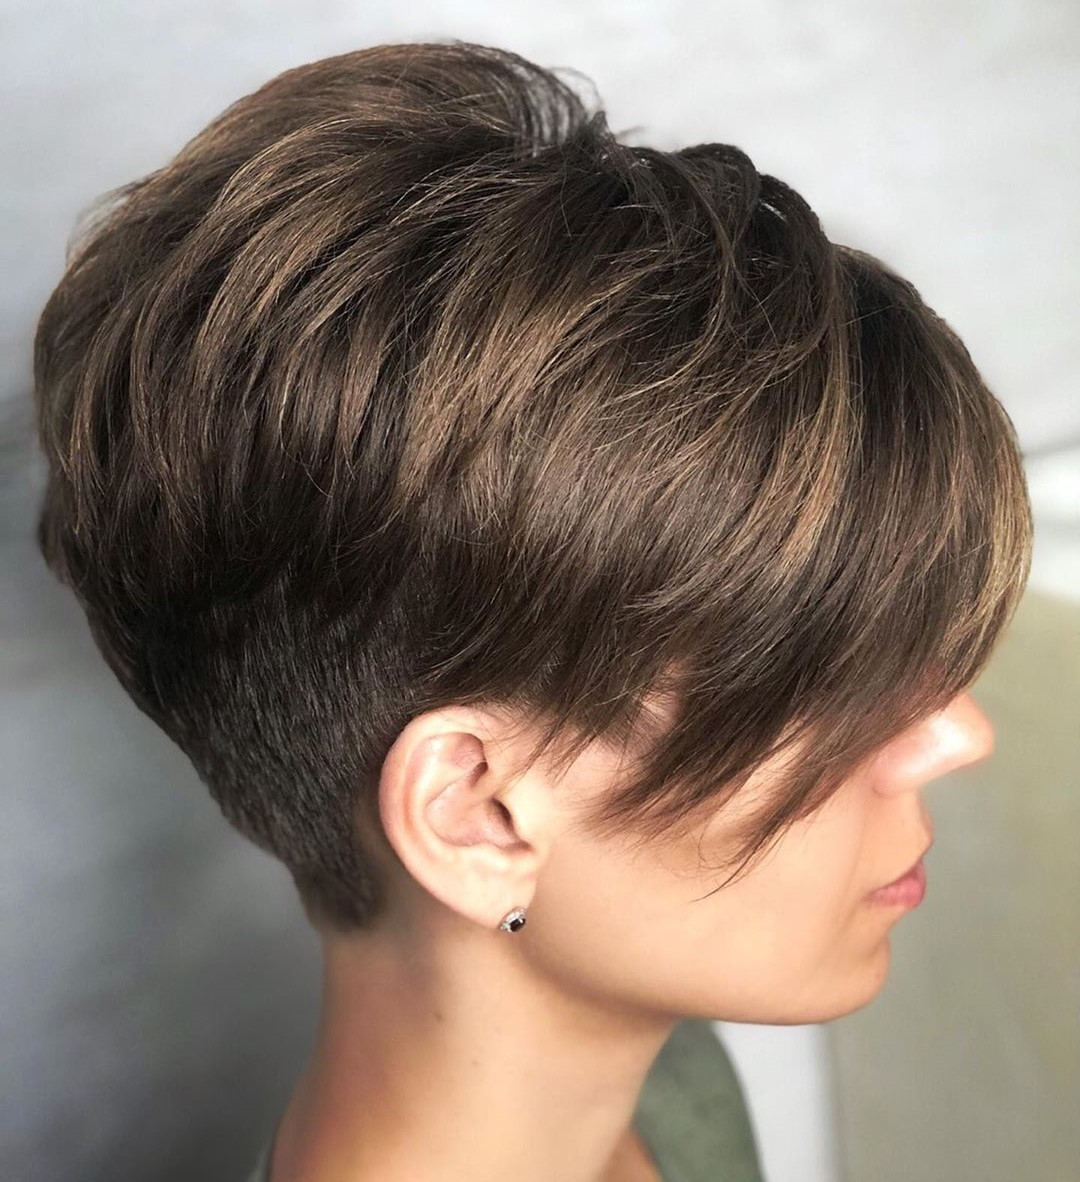 Most Current Short Feathered Bob Crop Hairstyles With 40 Short Hairstyles For Thick Hair (trendy In 2019 (View 8 of 20)